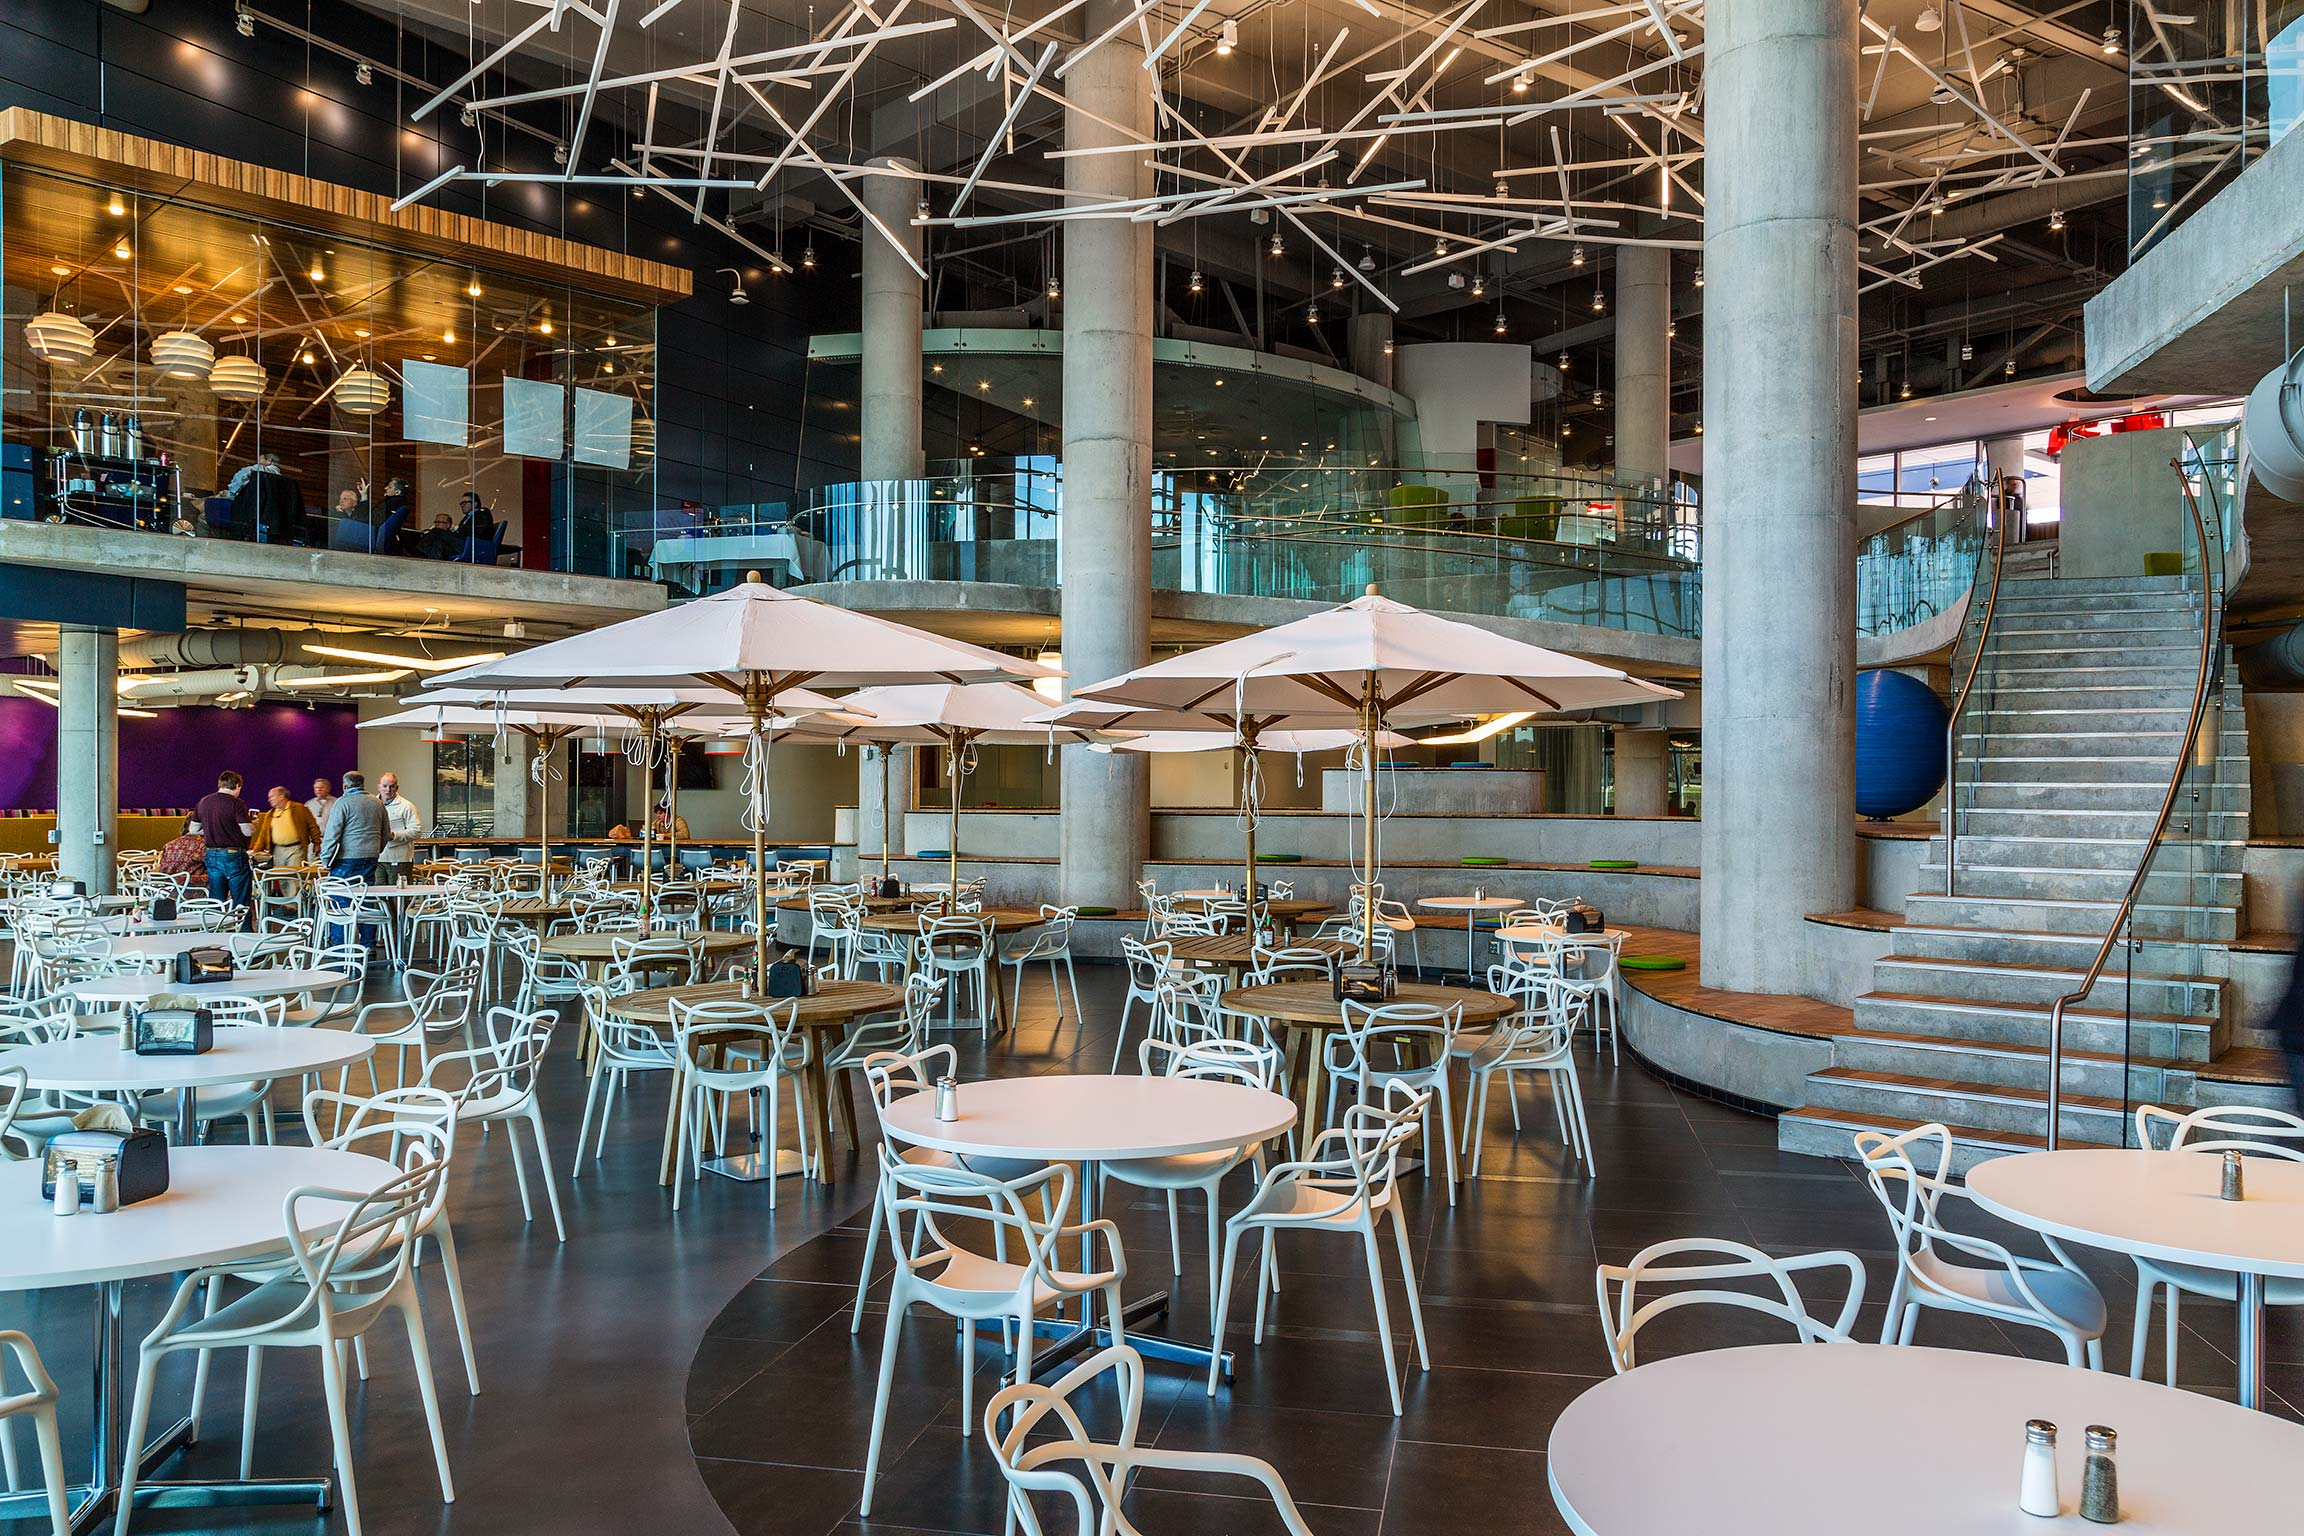 Dining area inside Intergraph Headquarters